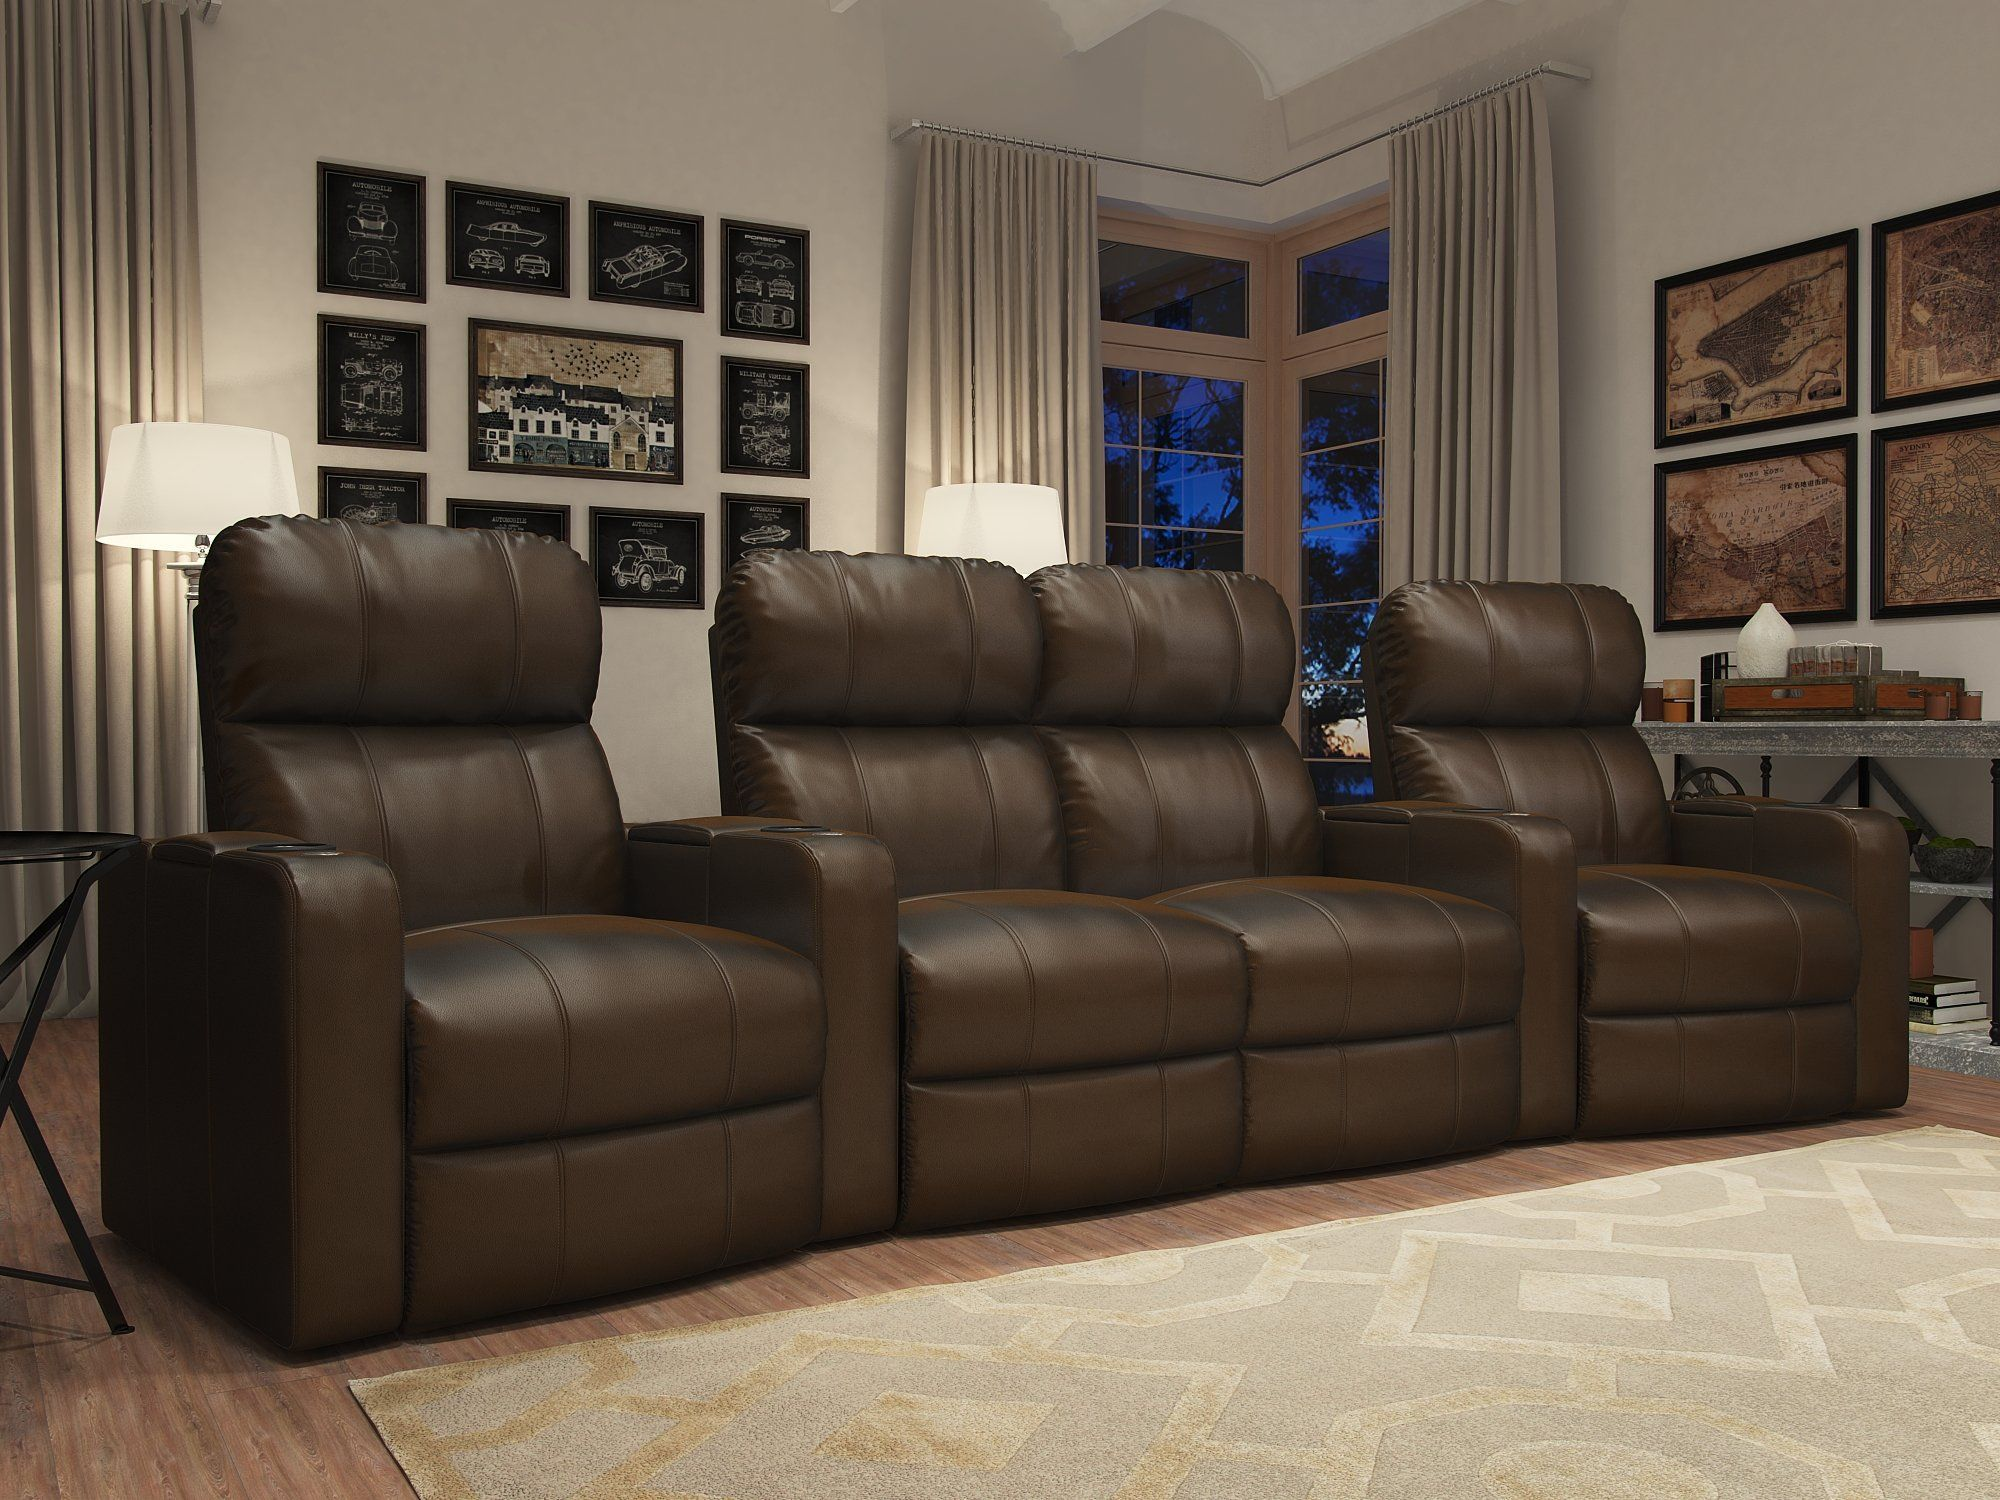 Home Theater Loveseat (Row of 4) | Home Theater Ideas | Pinterest ...